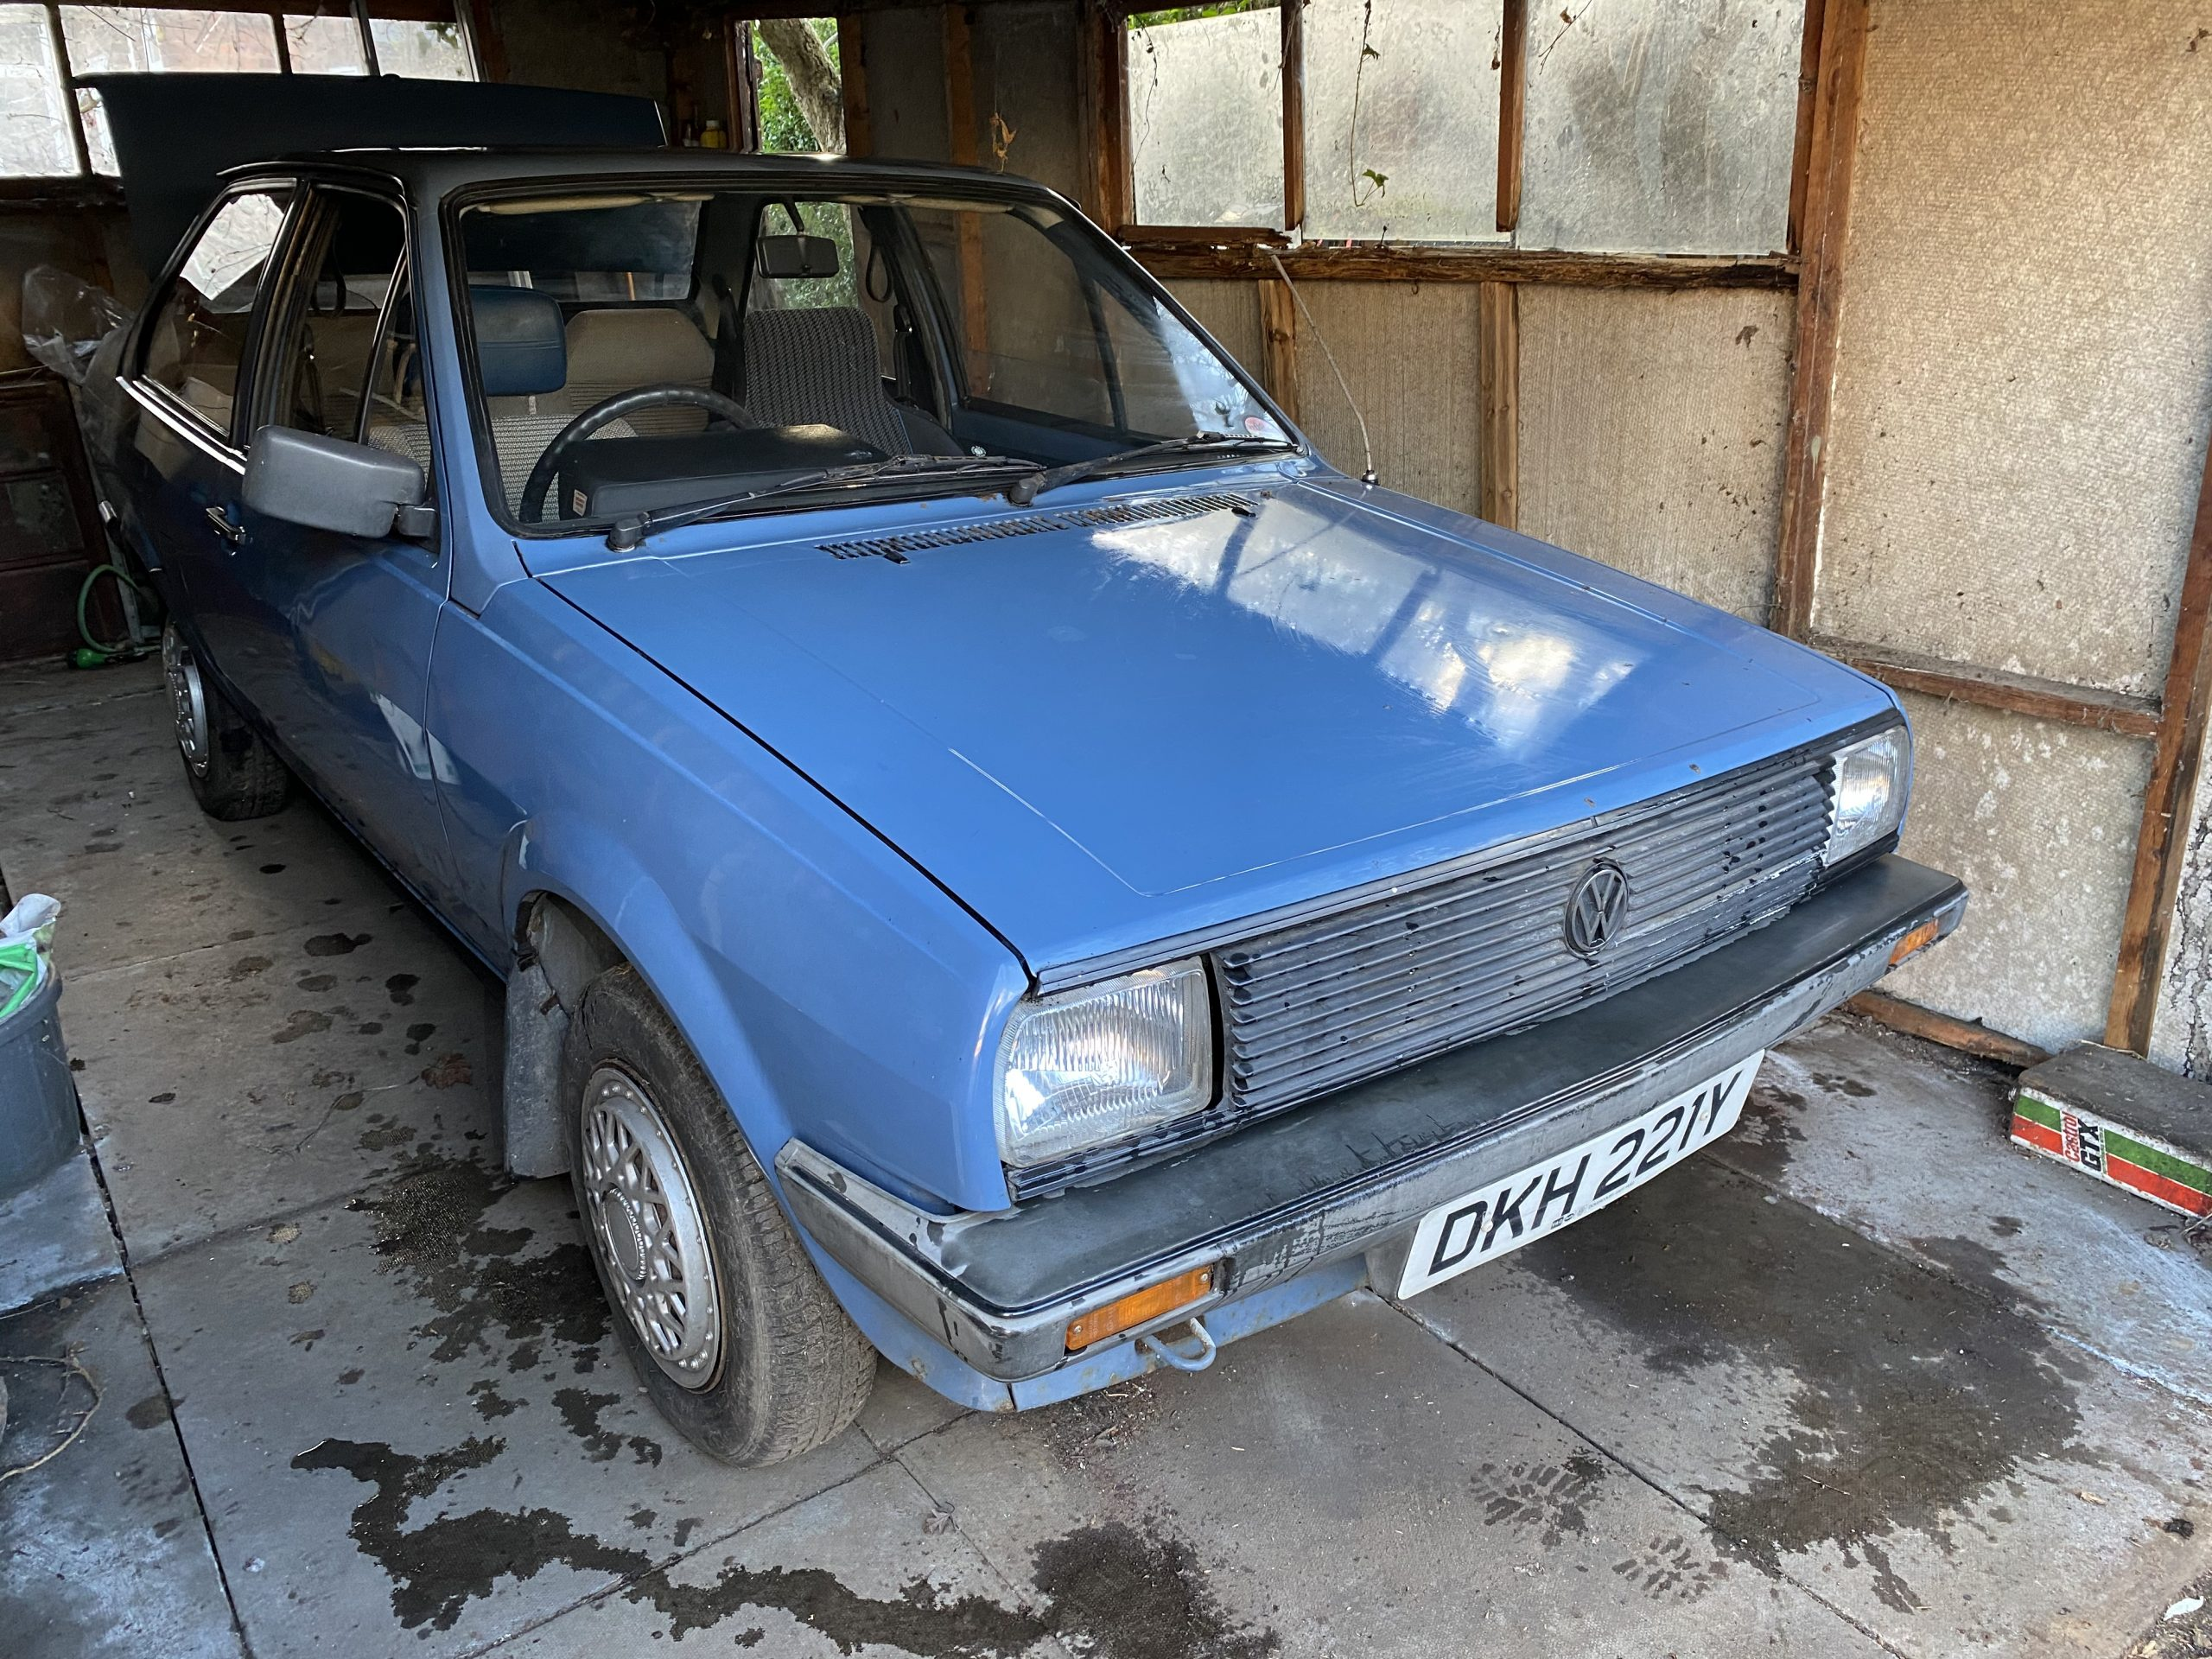 VW Polo 1982, garaged since new, not run for 14 years